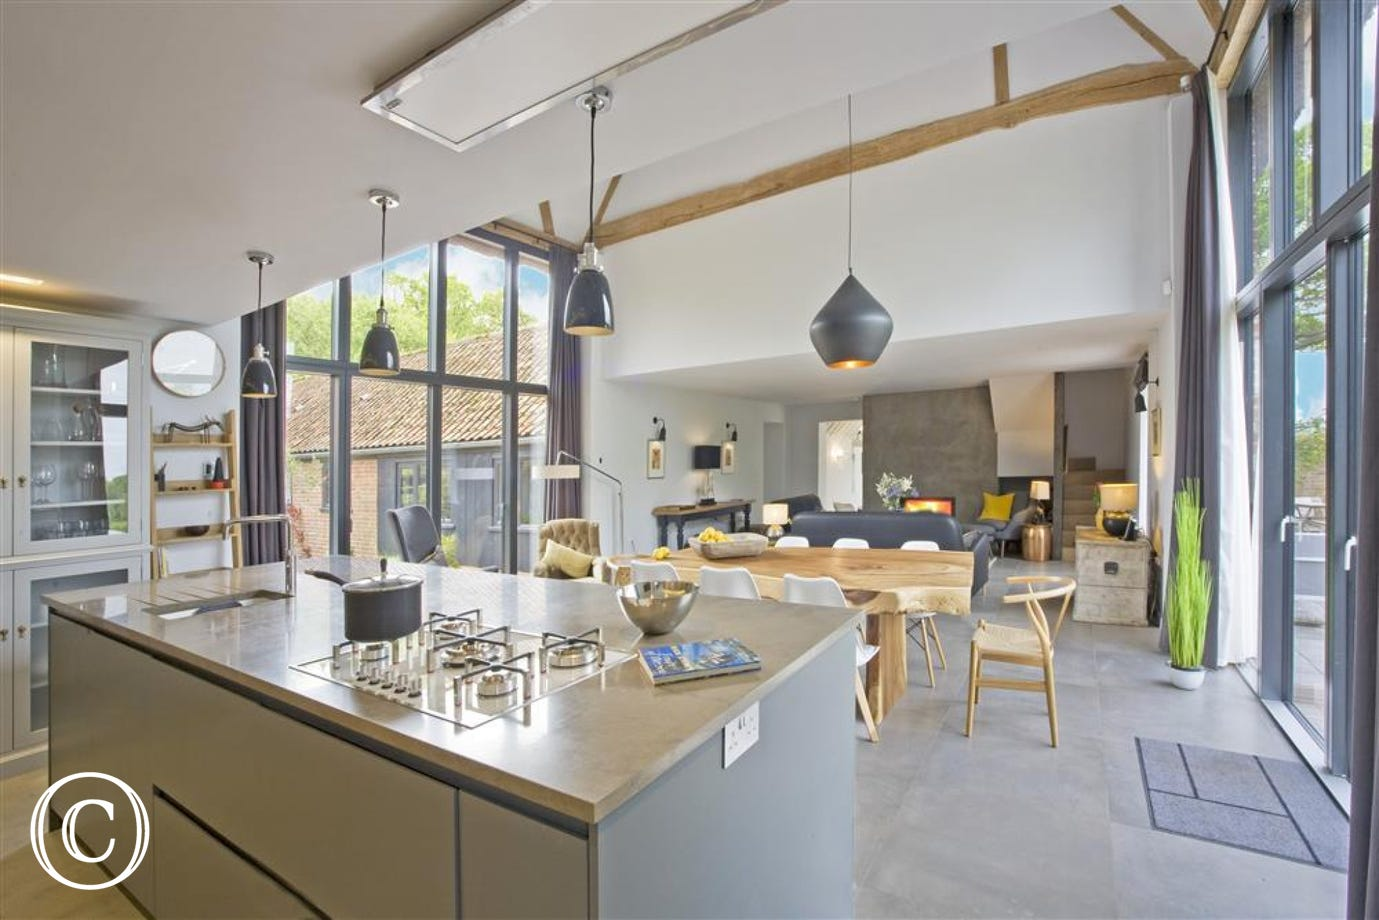 Alexandra Barn is a stunning newly renovated barn conversion close to the Coast  Enjoy a superb experience using top of the range cooking facilities